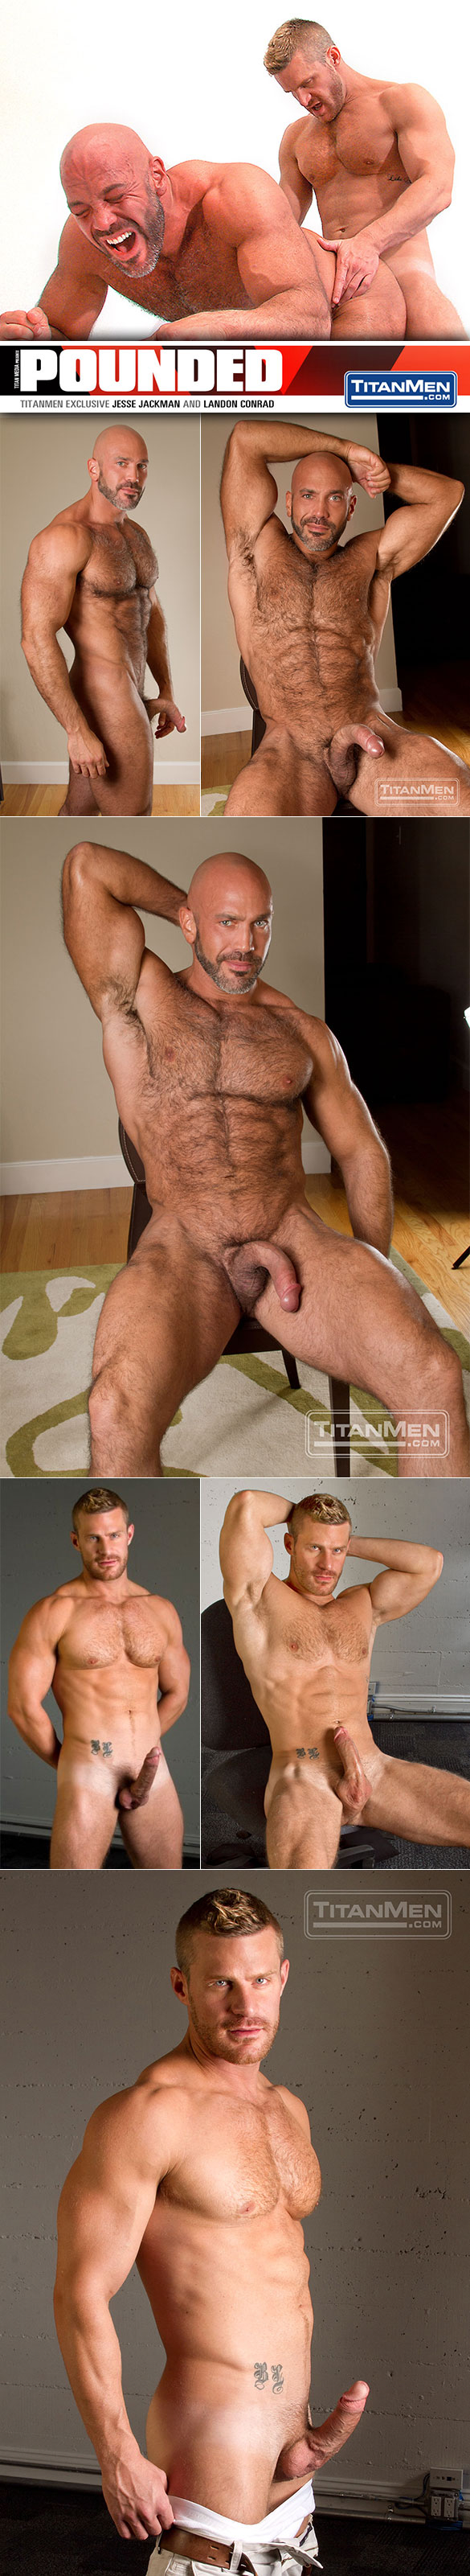 "Titan Men: Landon Conrad fucks Jesse Jackman in ""Pounded"""